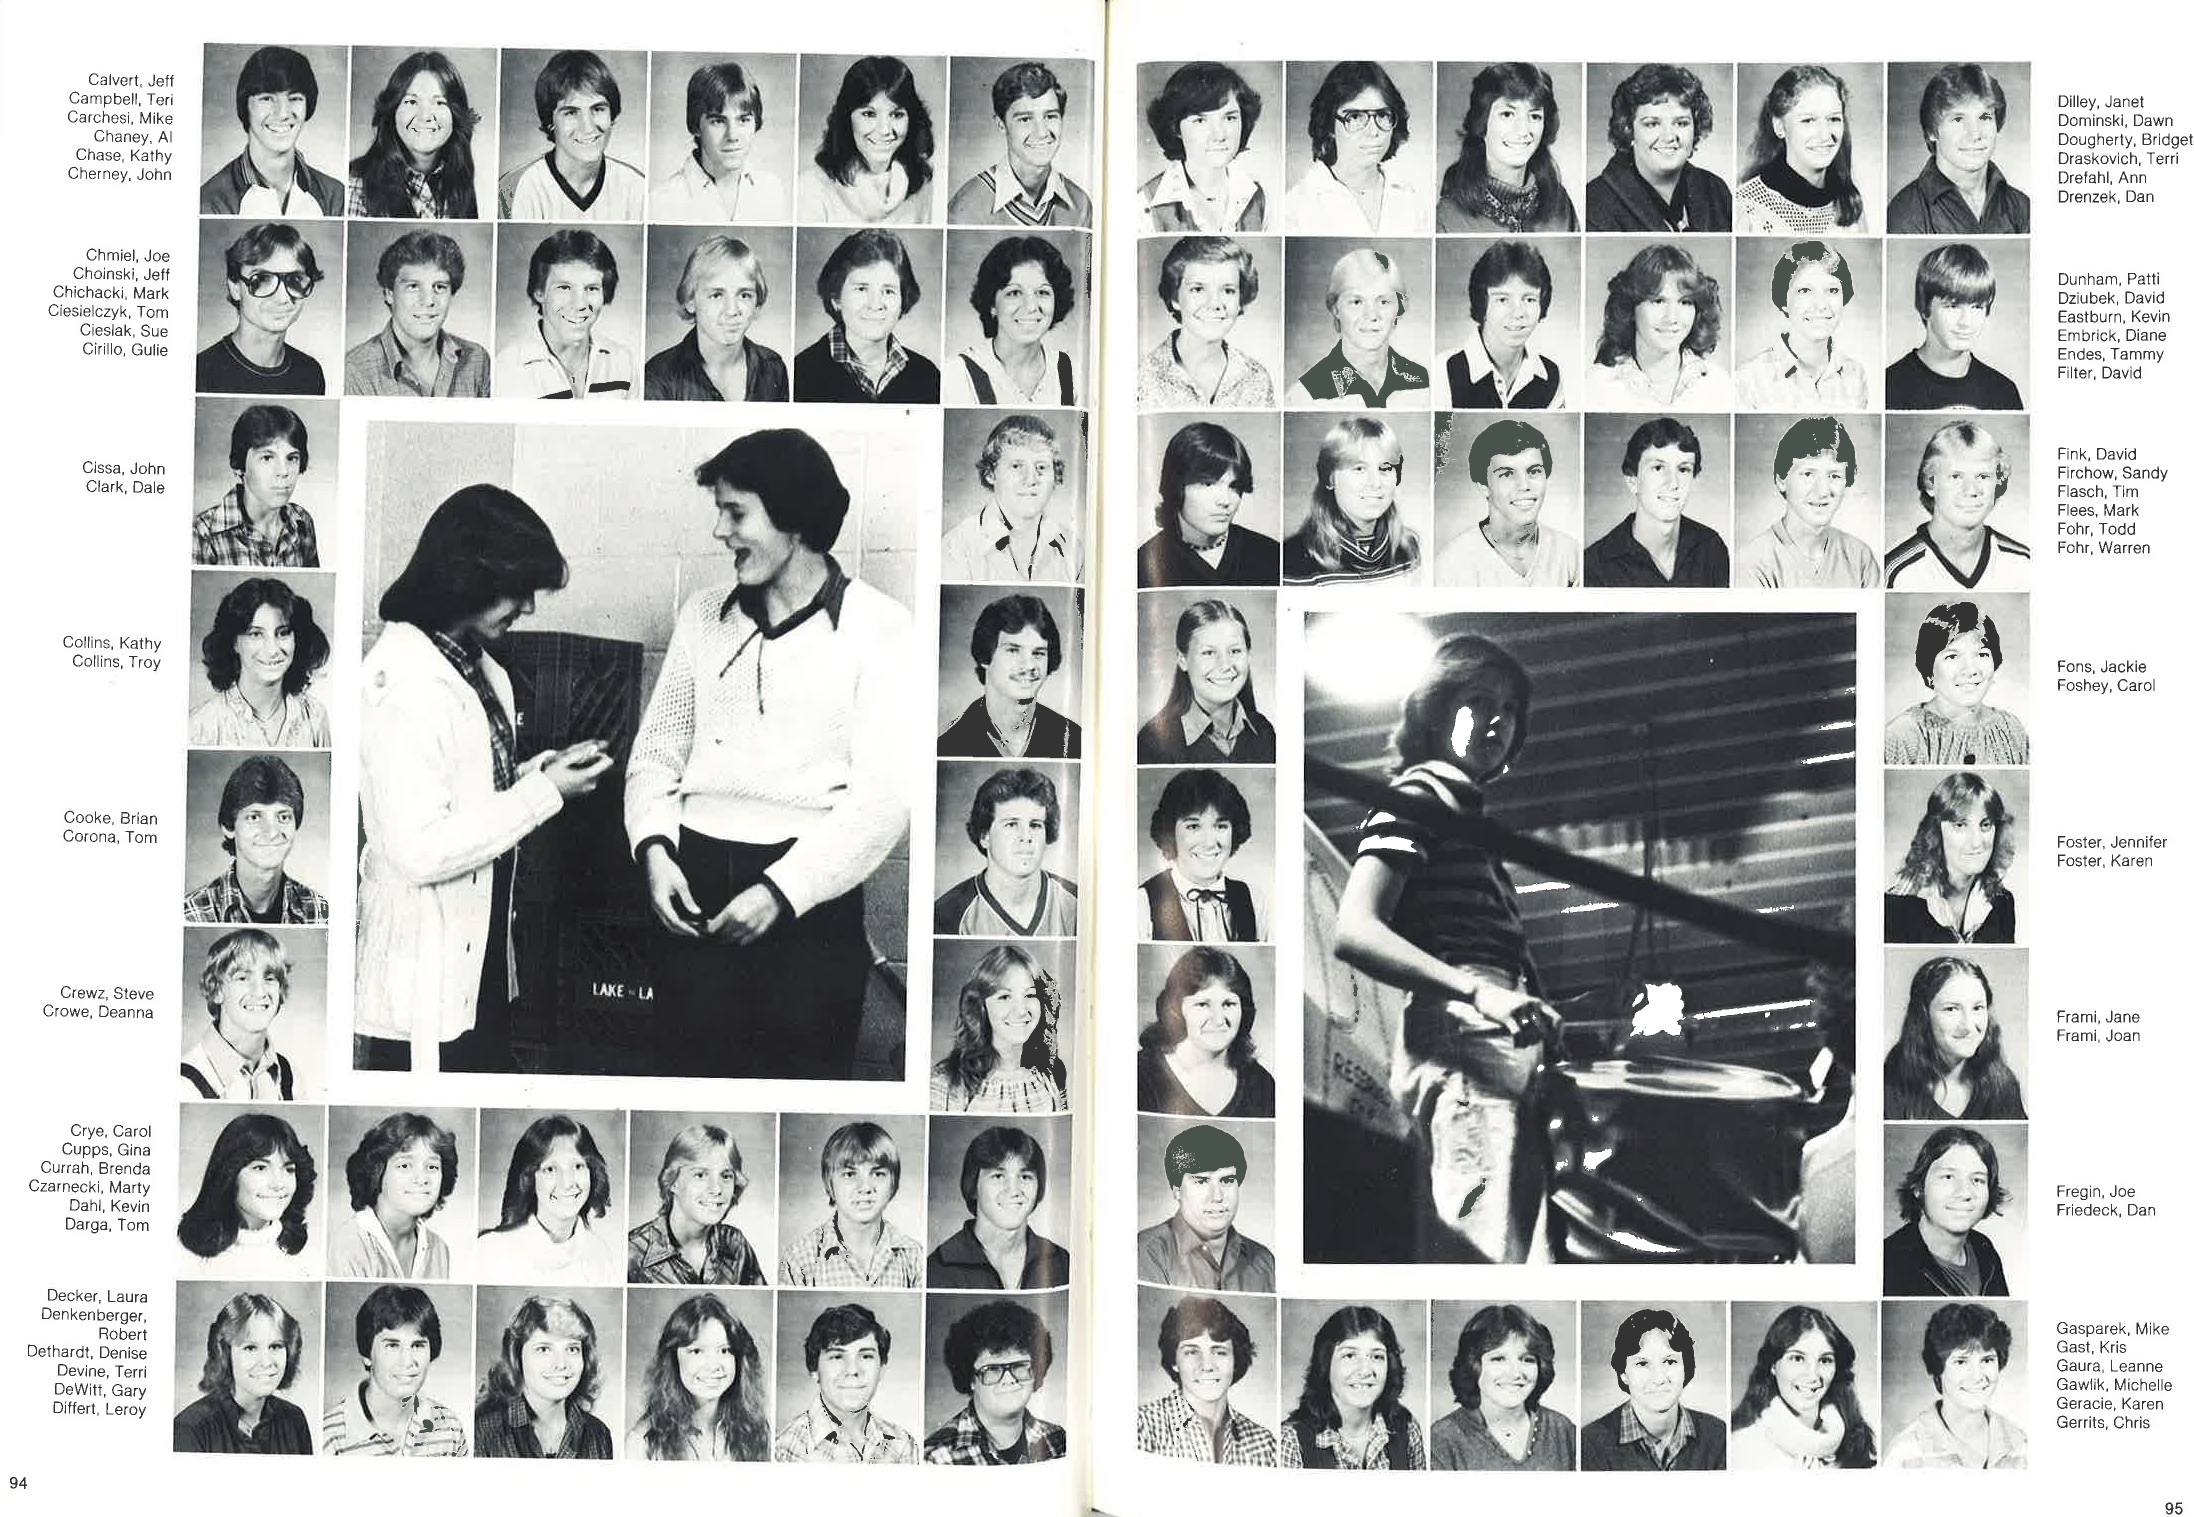 1981_Yearbook_94.jpg